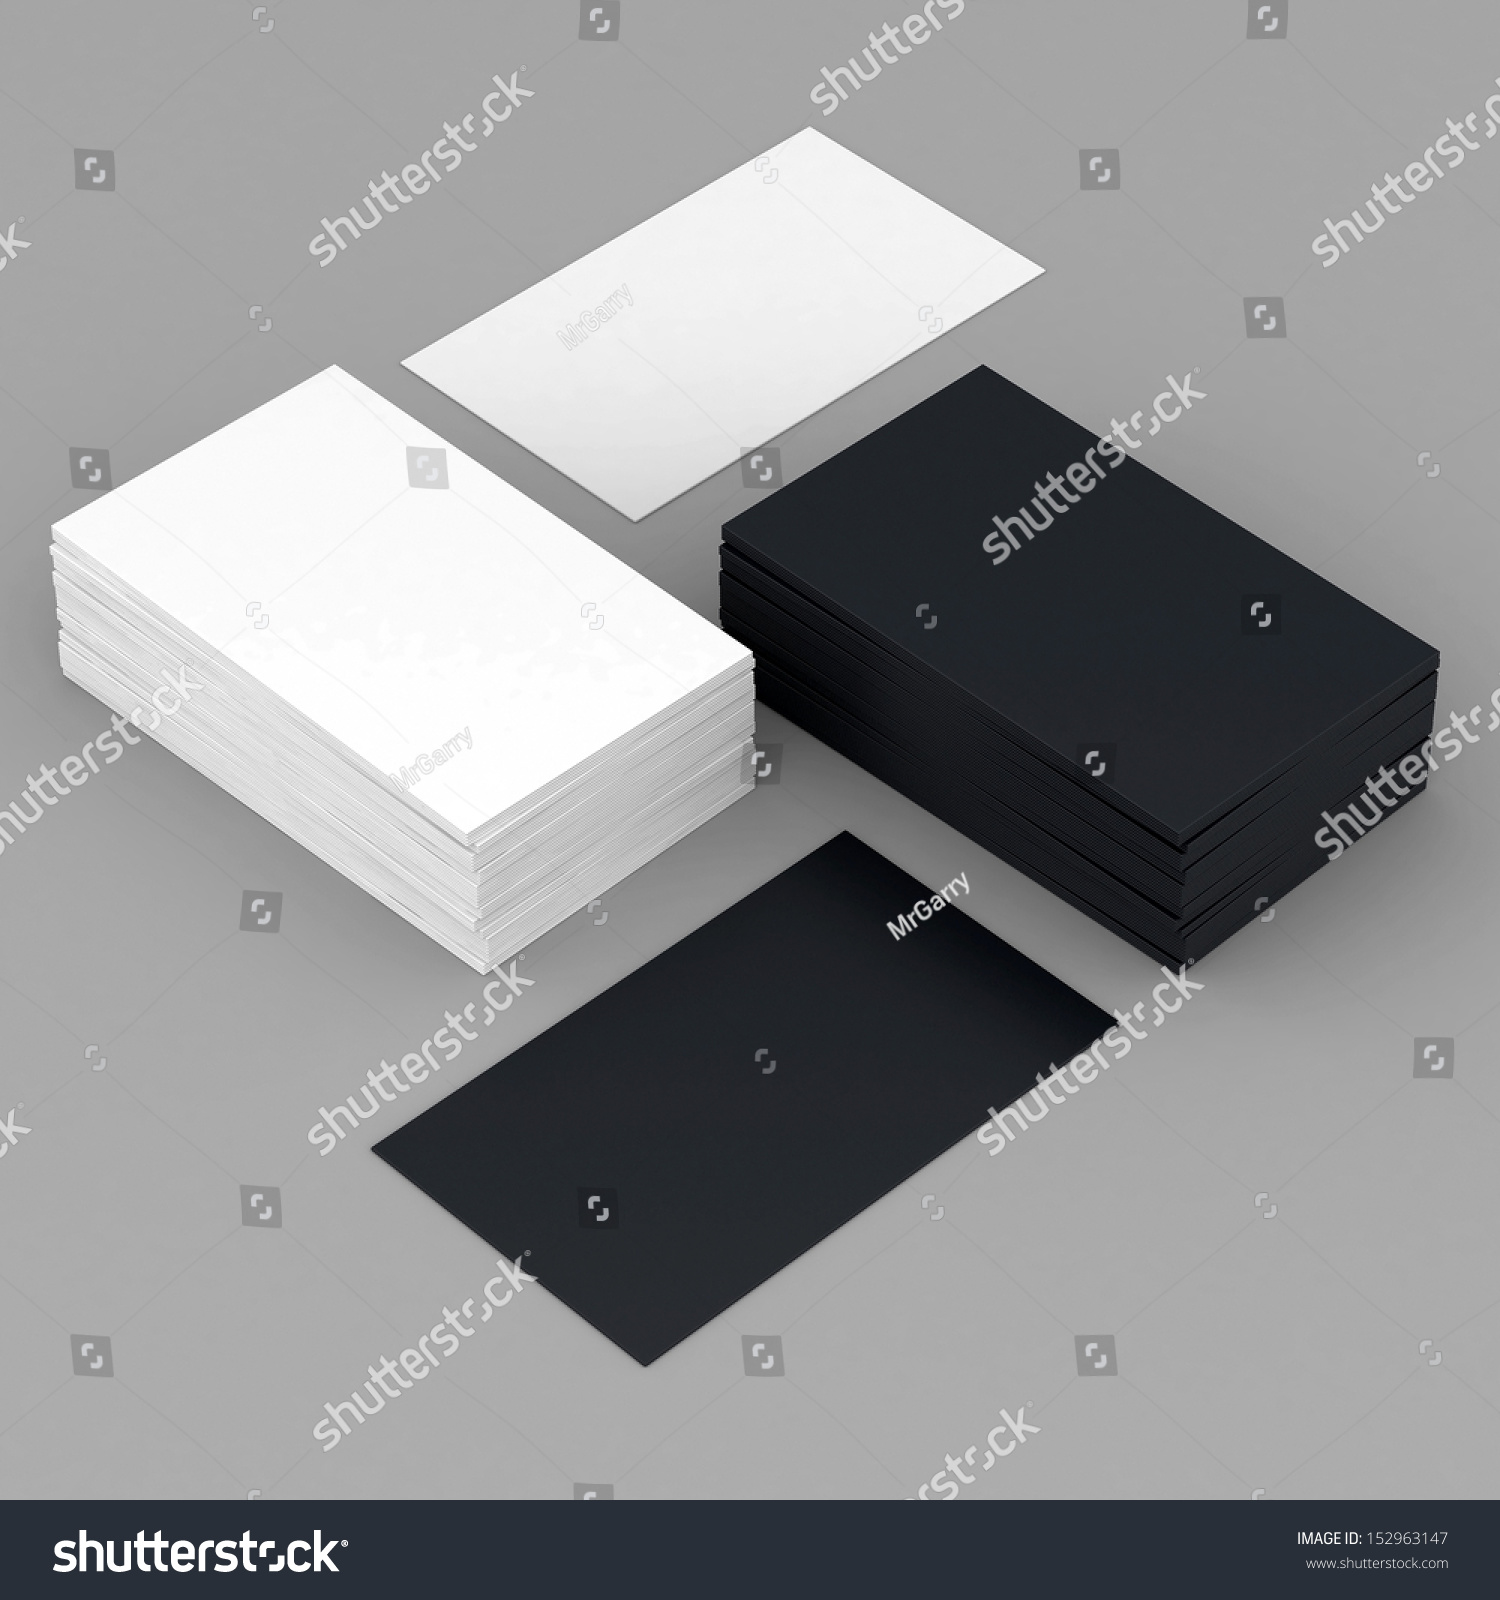 business cards blank mockup template gray stock illustration